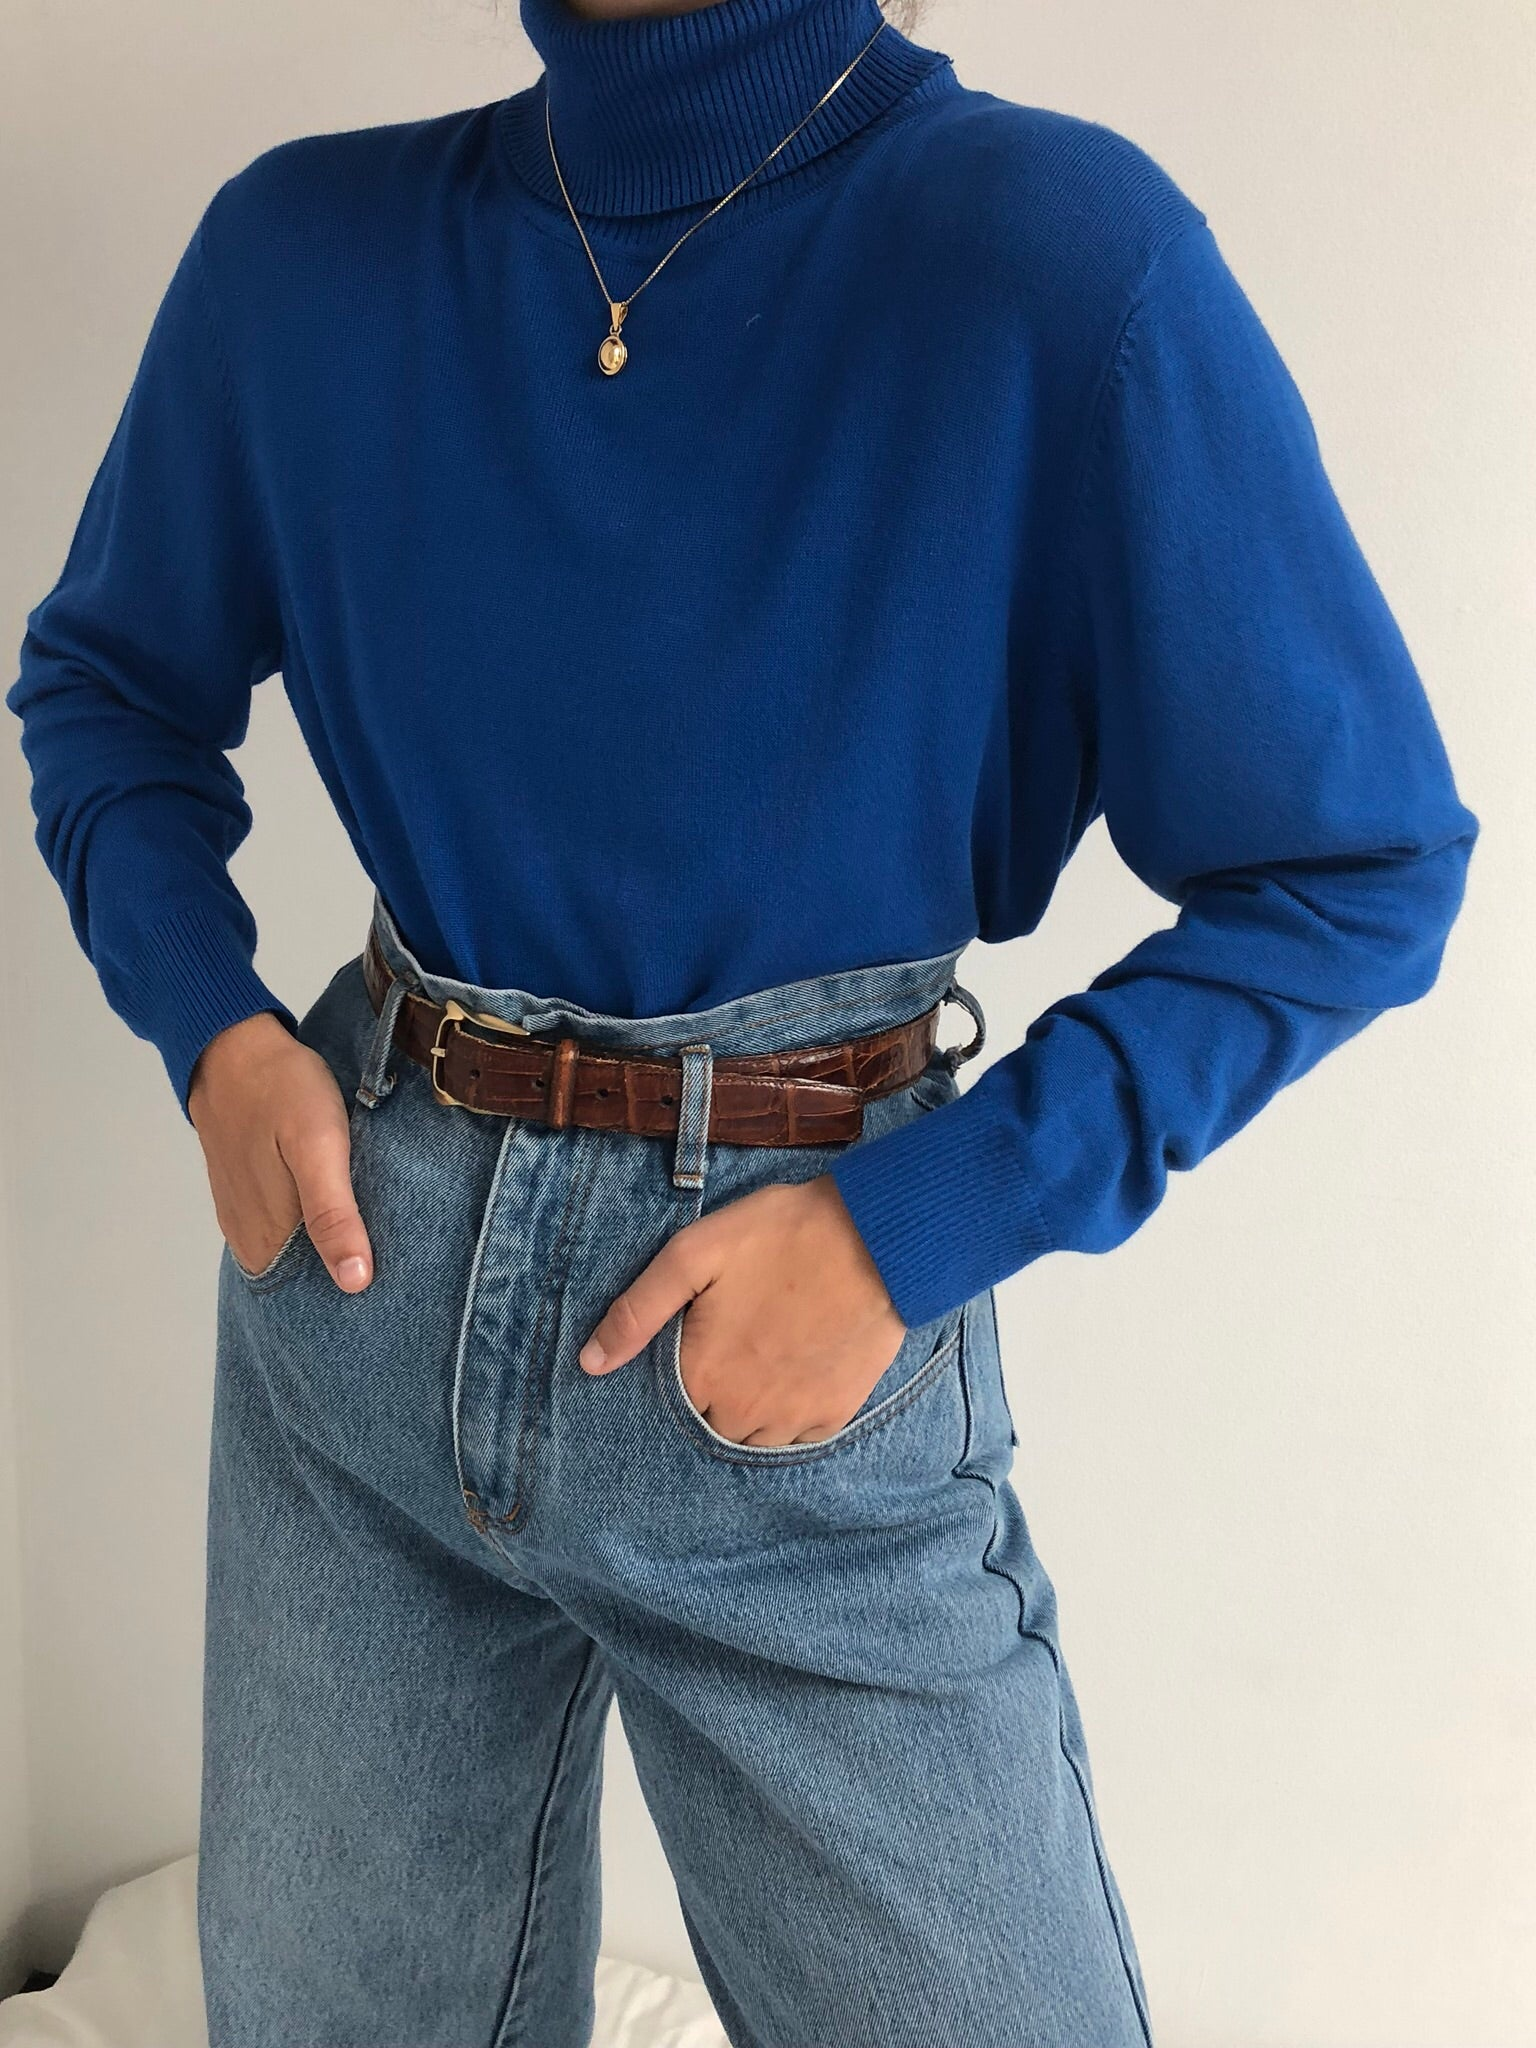 Vintage Cobalt Knit Turtleneck